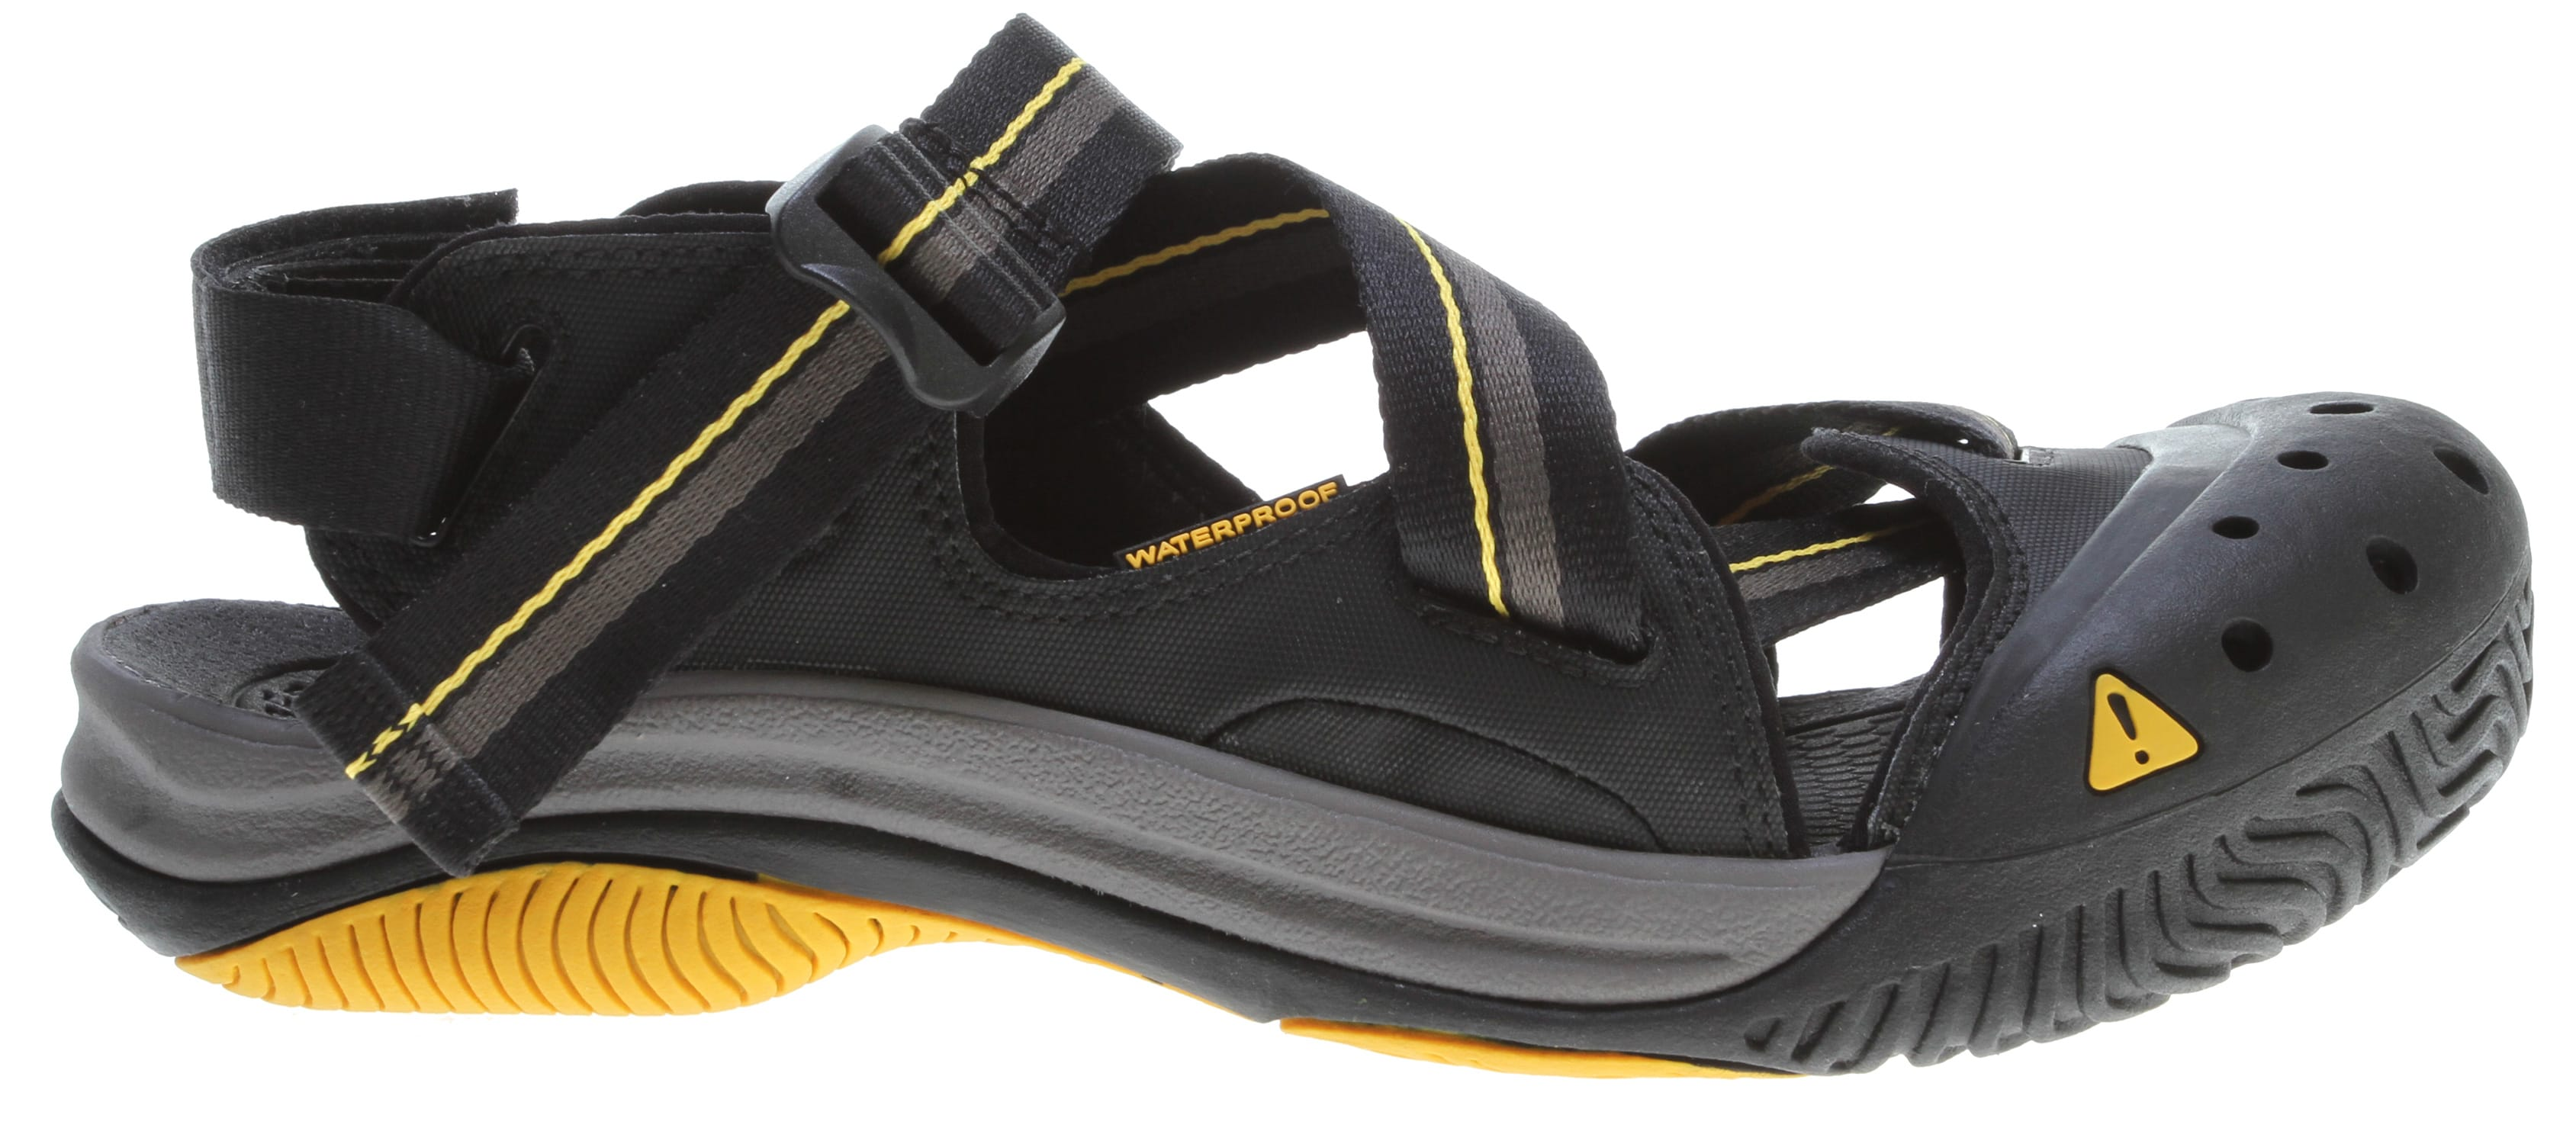 102cf2068075 Keen Hydro Guide Water Shoes - thumbnail 1